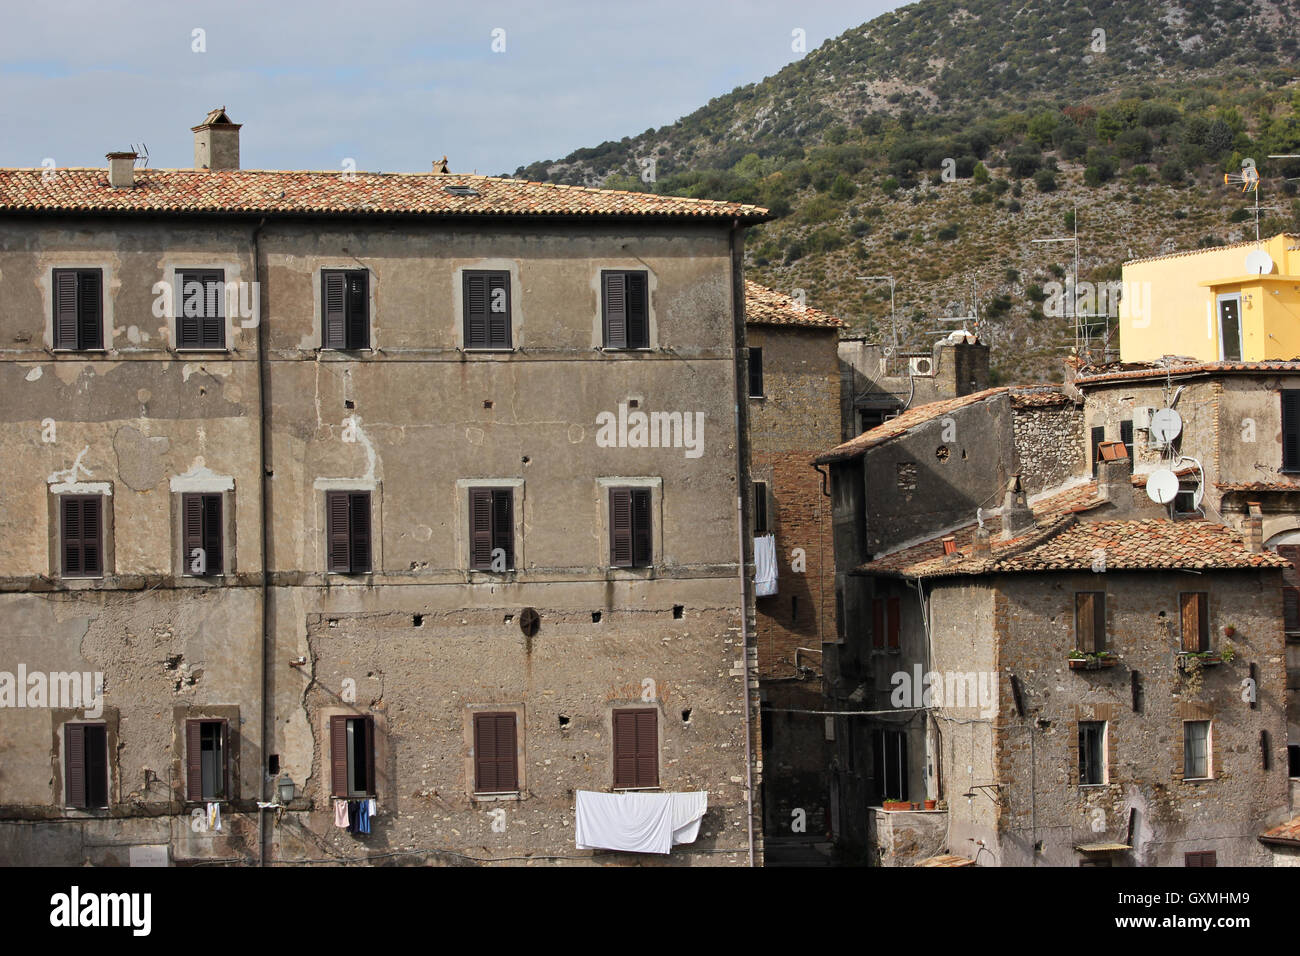 old fascinating buildings in Tivoli, Italy Stock Photo